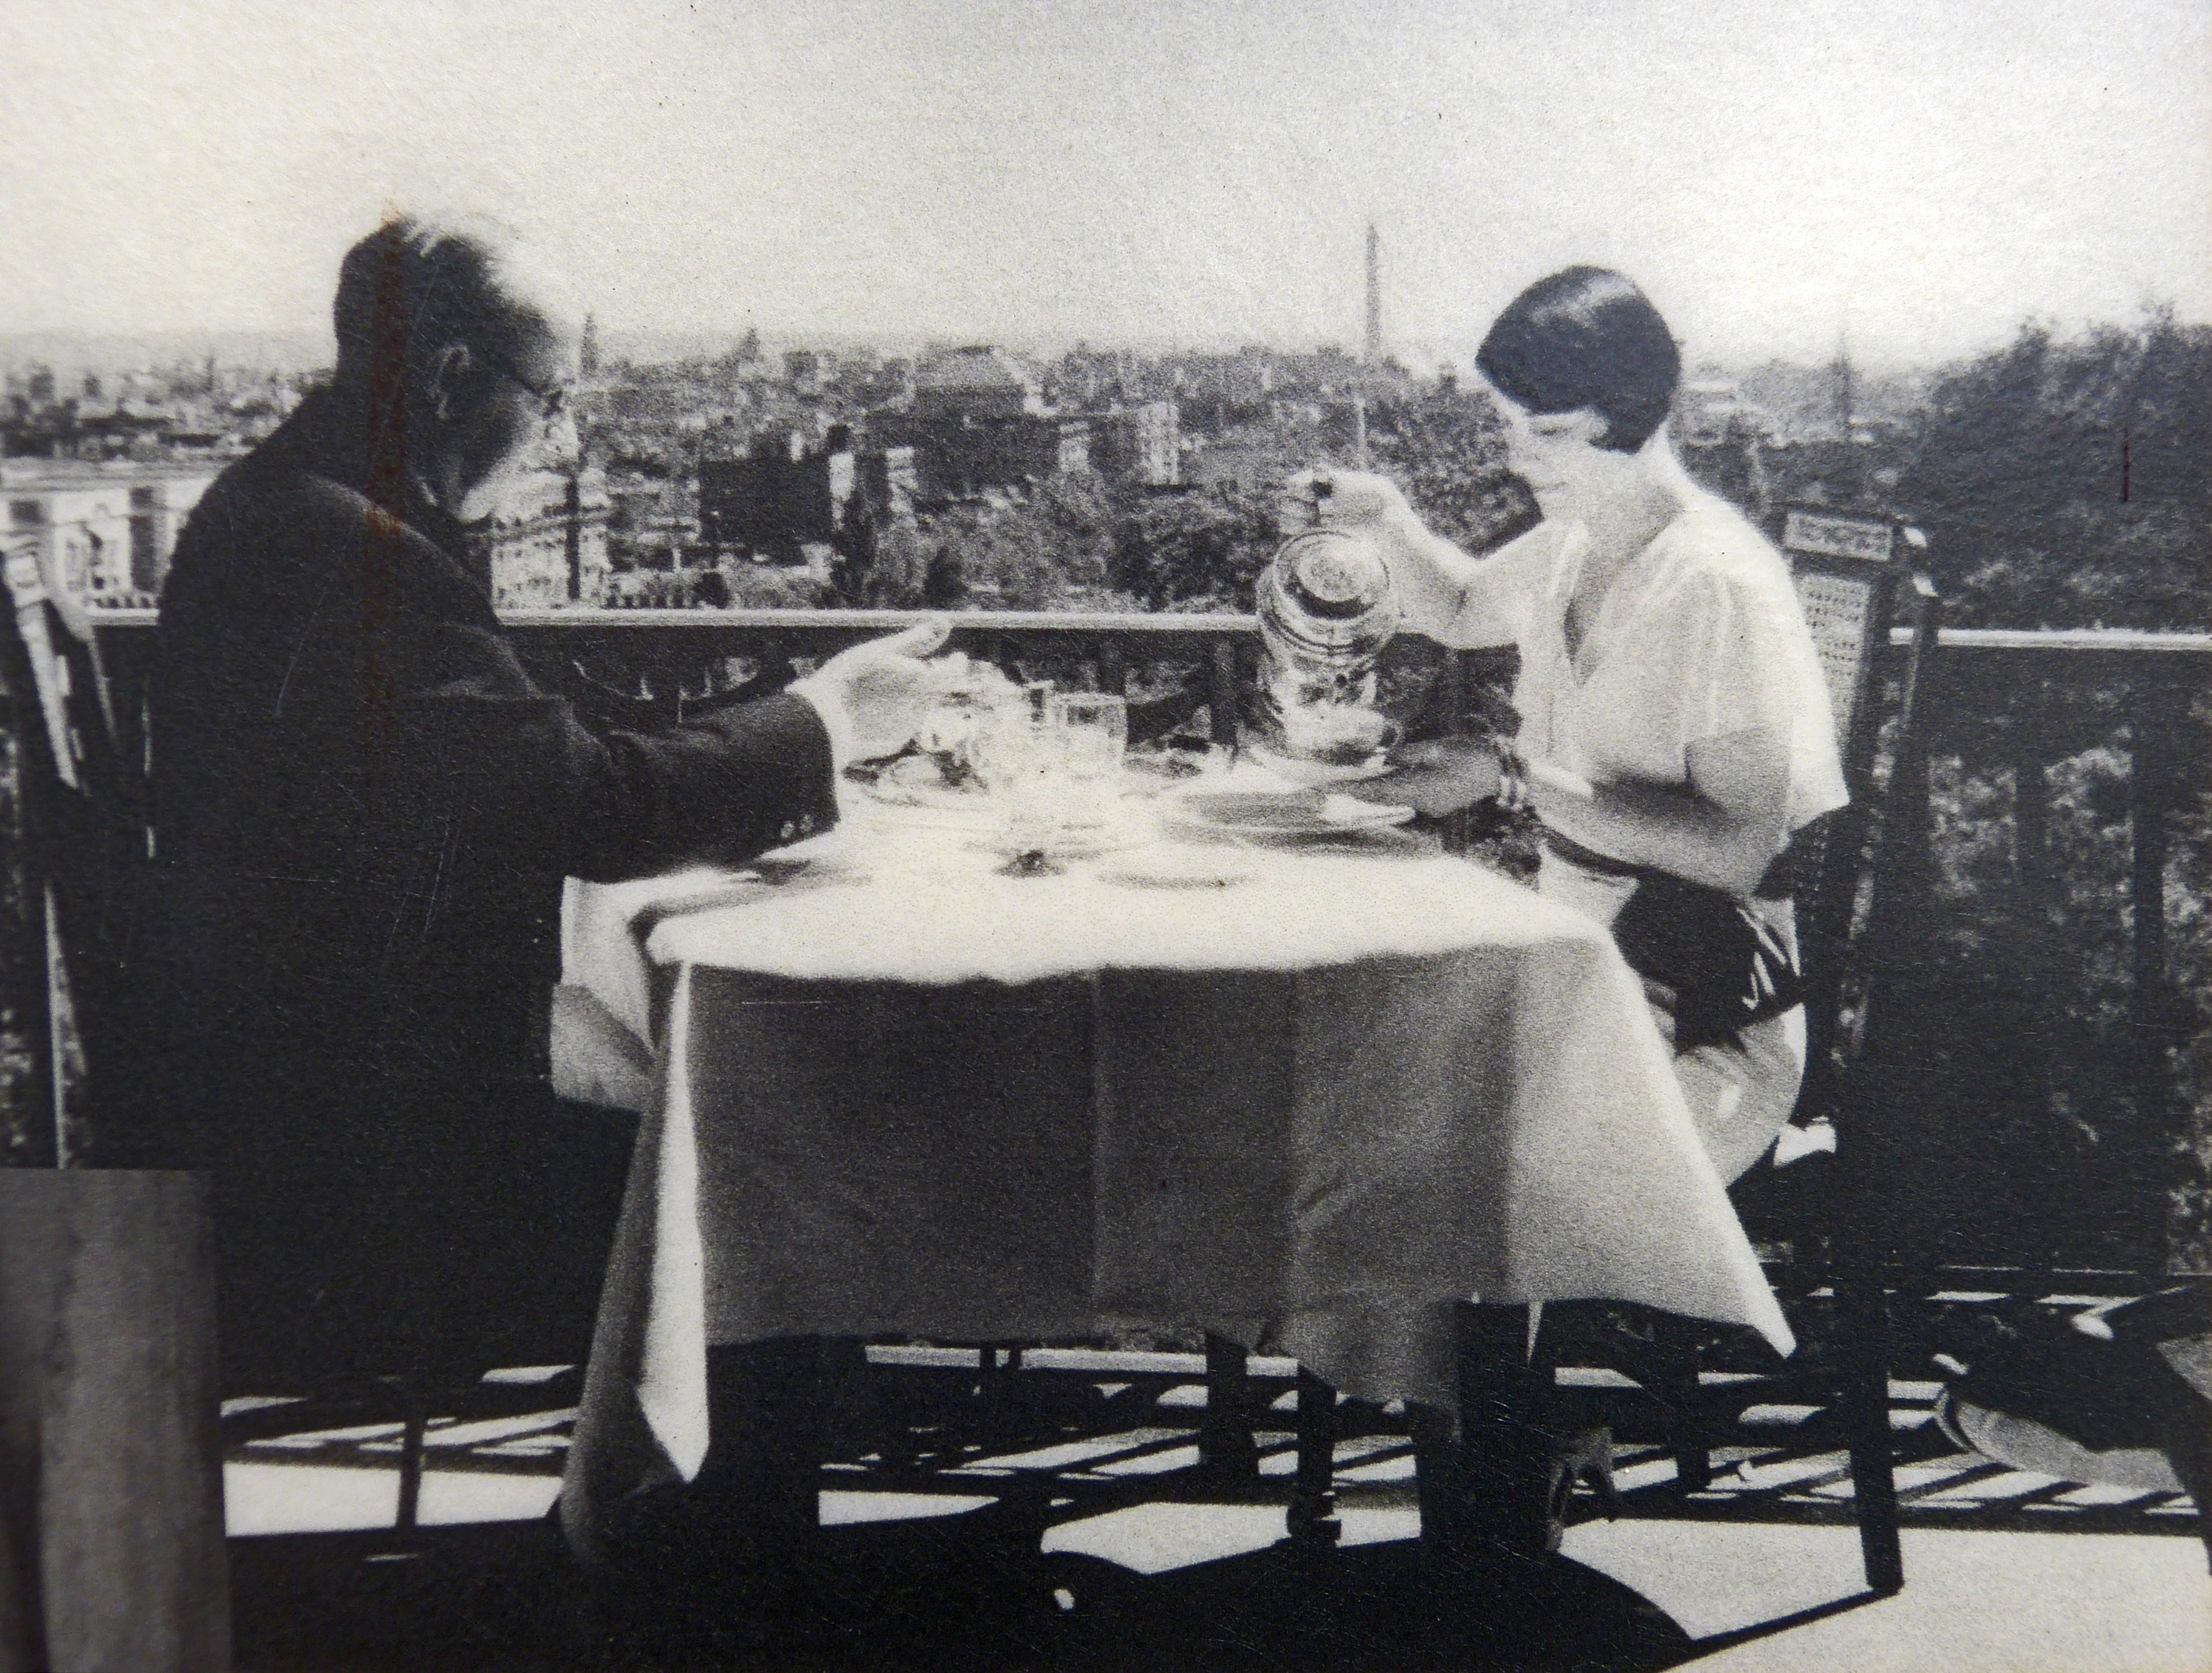 Breakfasting at Meridian Hill Mansions (the Envoy), 1930s.